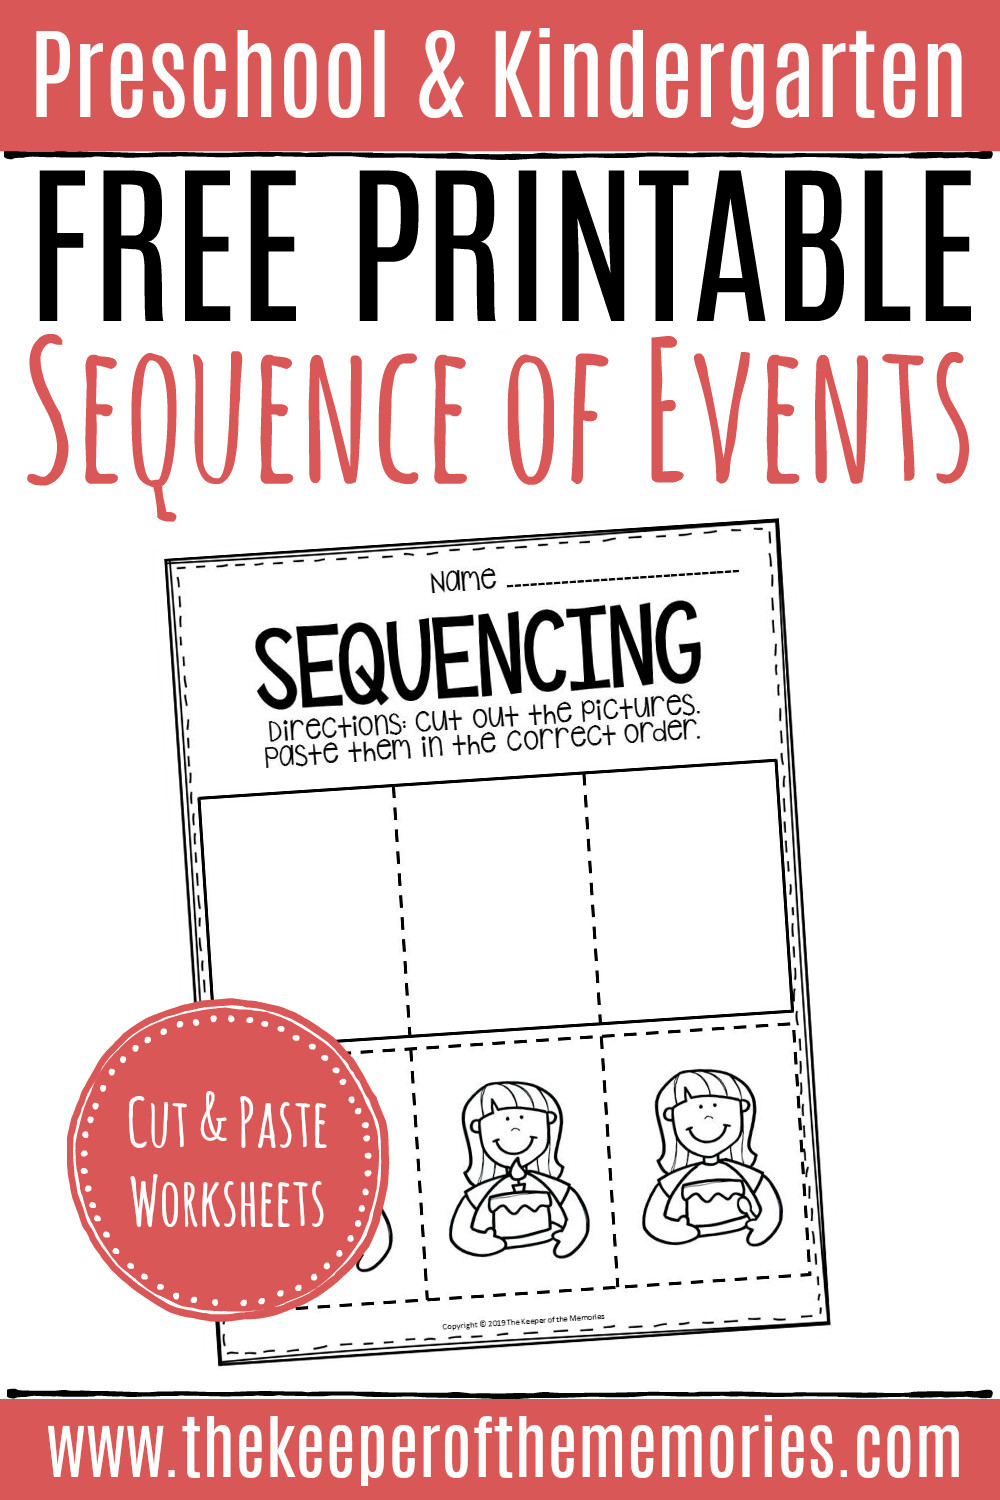 Sequencing Worksheets for 2nd Grade Free Printable Sequence events Worksheets Sequencing Cut